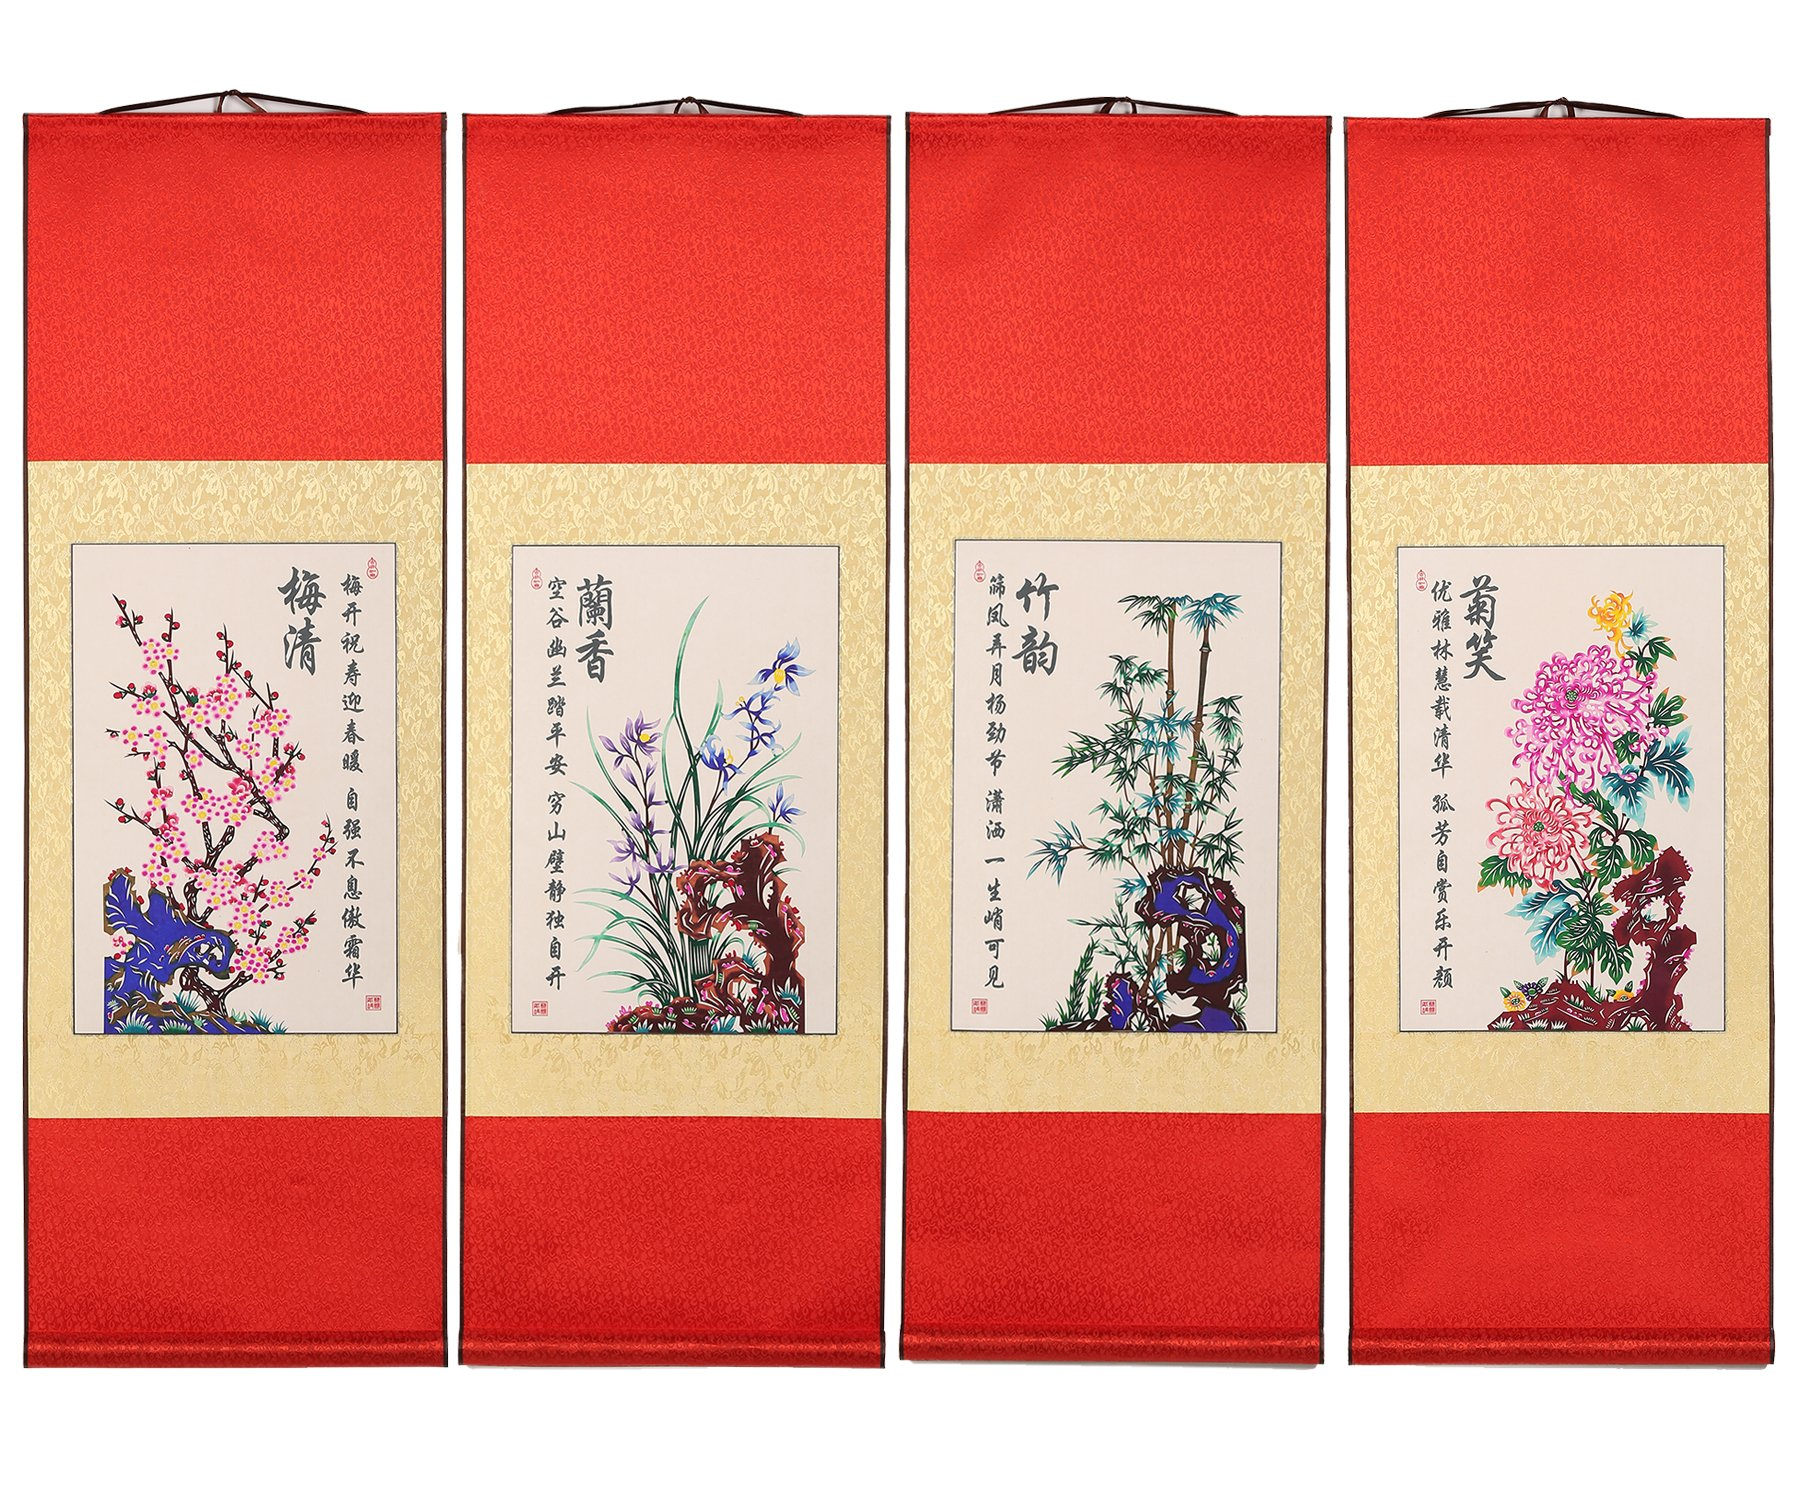 Shayier China 's Intangible Cultural Heritage Chinese Handmade Paper-Cut Chinese Paper-Cut Art Wall Scroll (Plum & Orchid & Bamboo & Chrysanthemum_S)